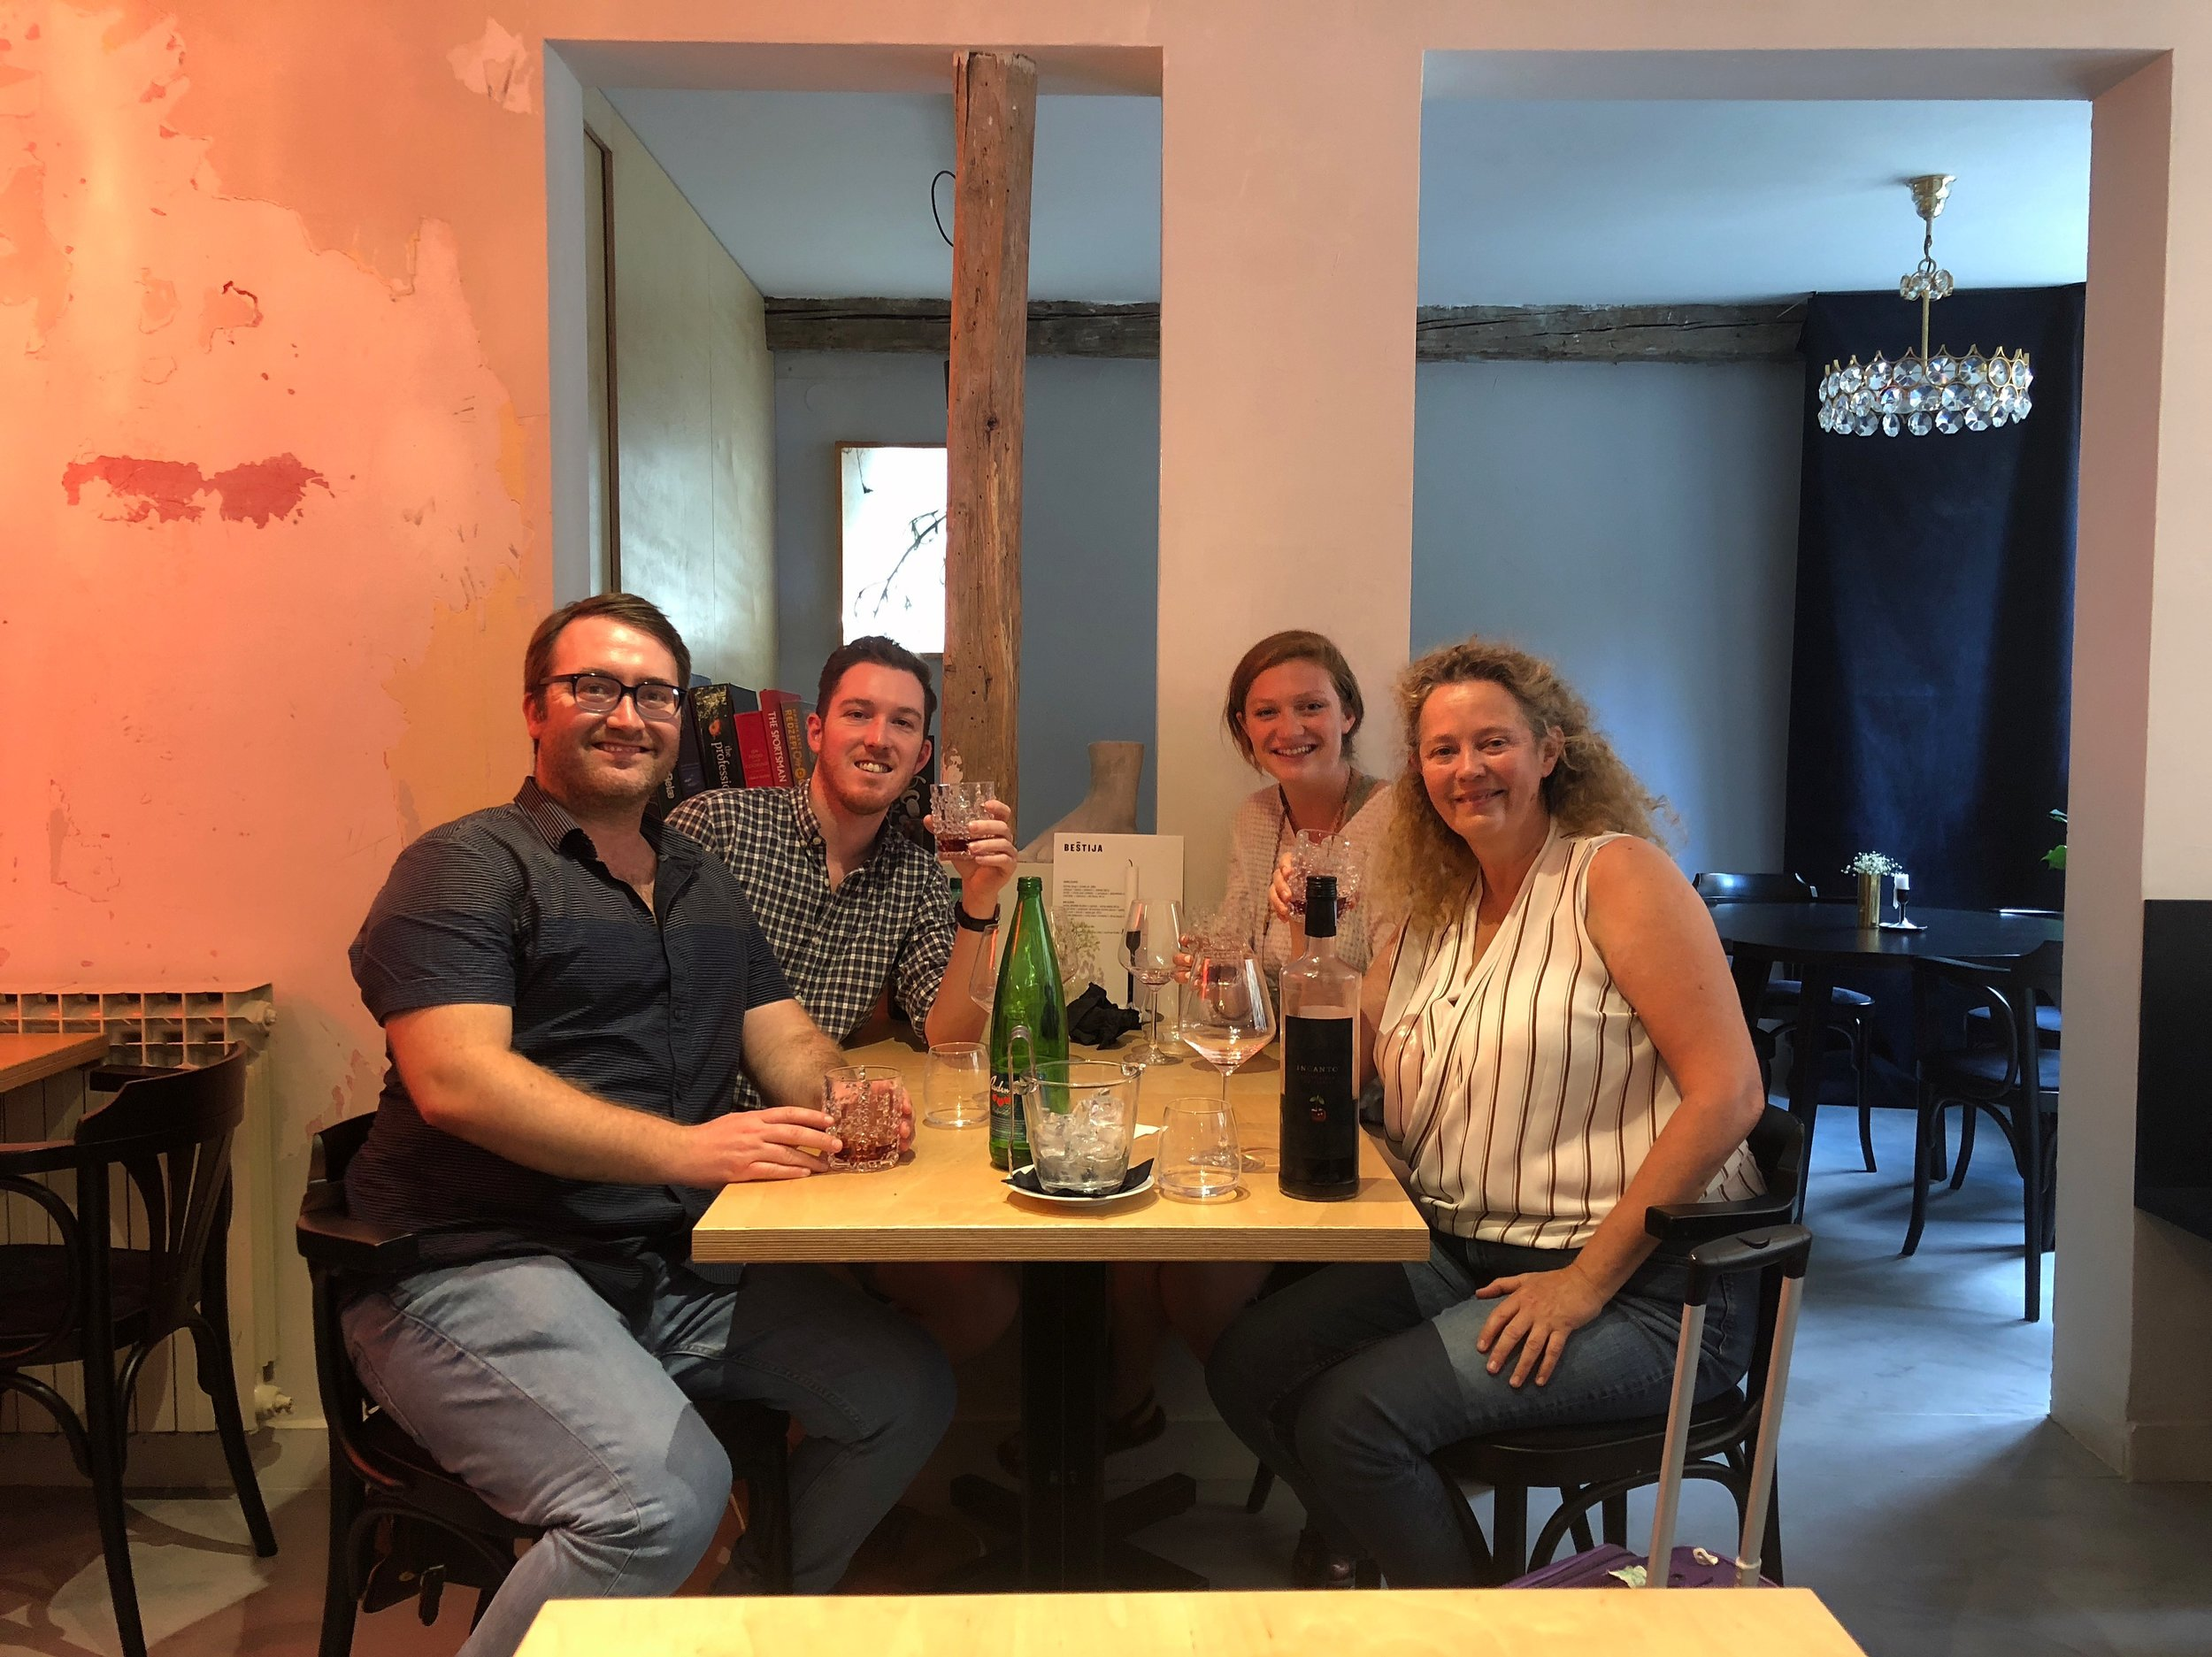 Lunch at Beštija with a friend and winemaker Jo Ahearne, who's wines are on the list.